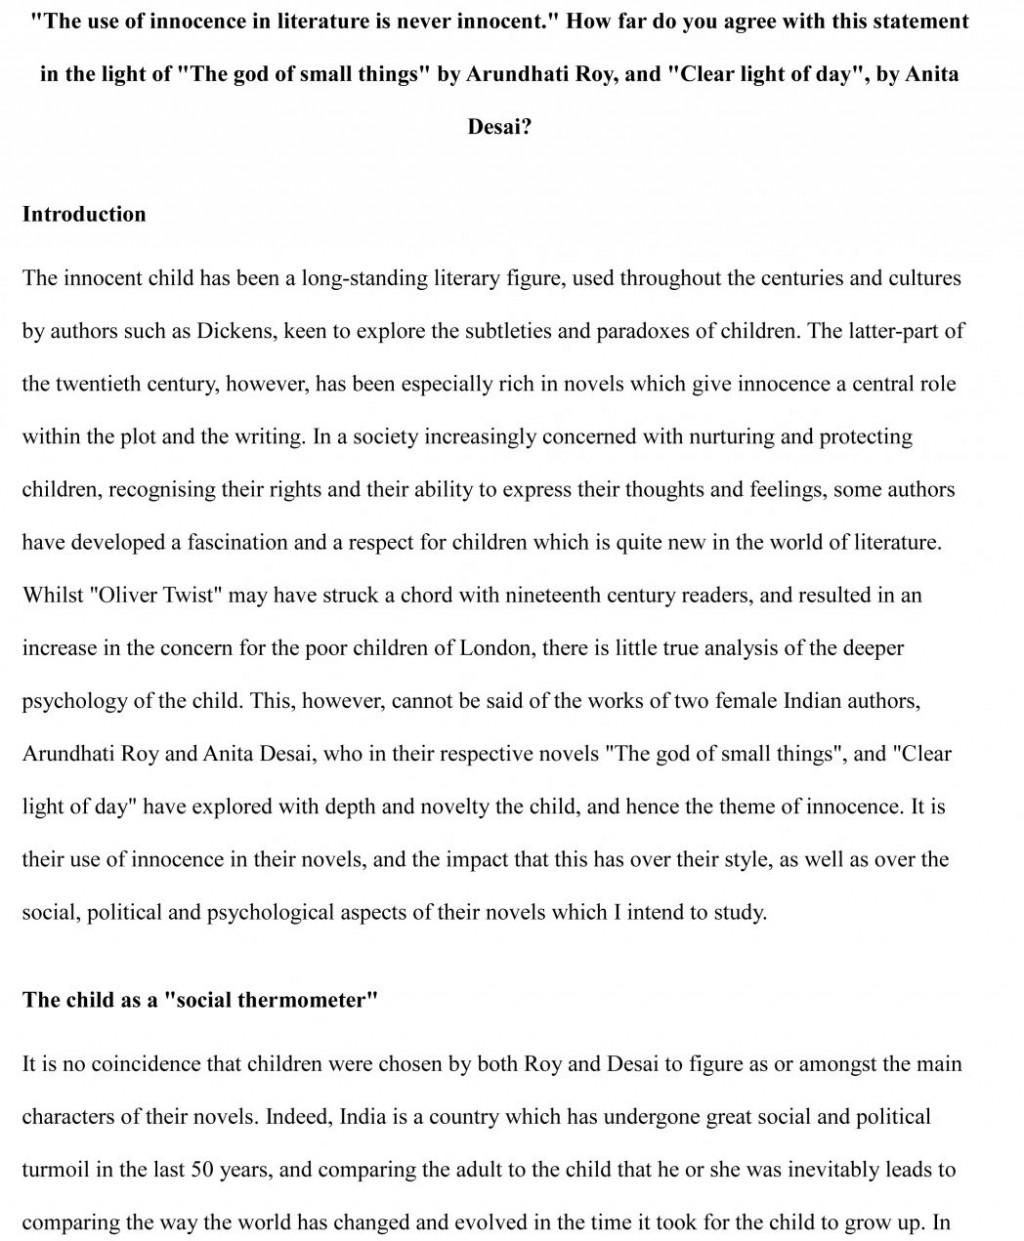 008 Interpretive Essay Example Examples Poem Essays On Poems Doit Ip Myp Personal Project Alevel Course Work S Outstanding Sample Thesis Statement Writing Prompts Large